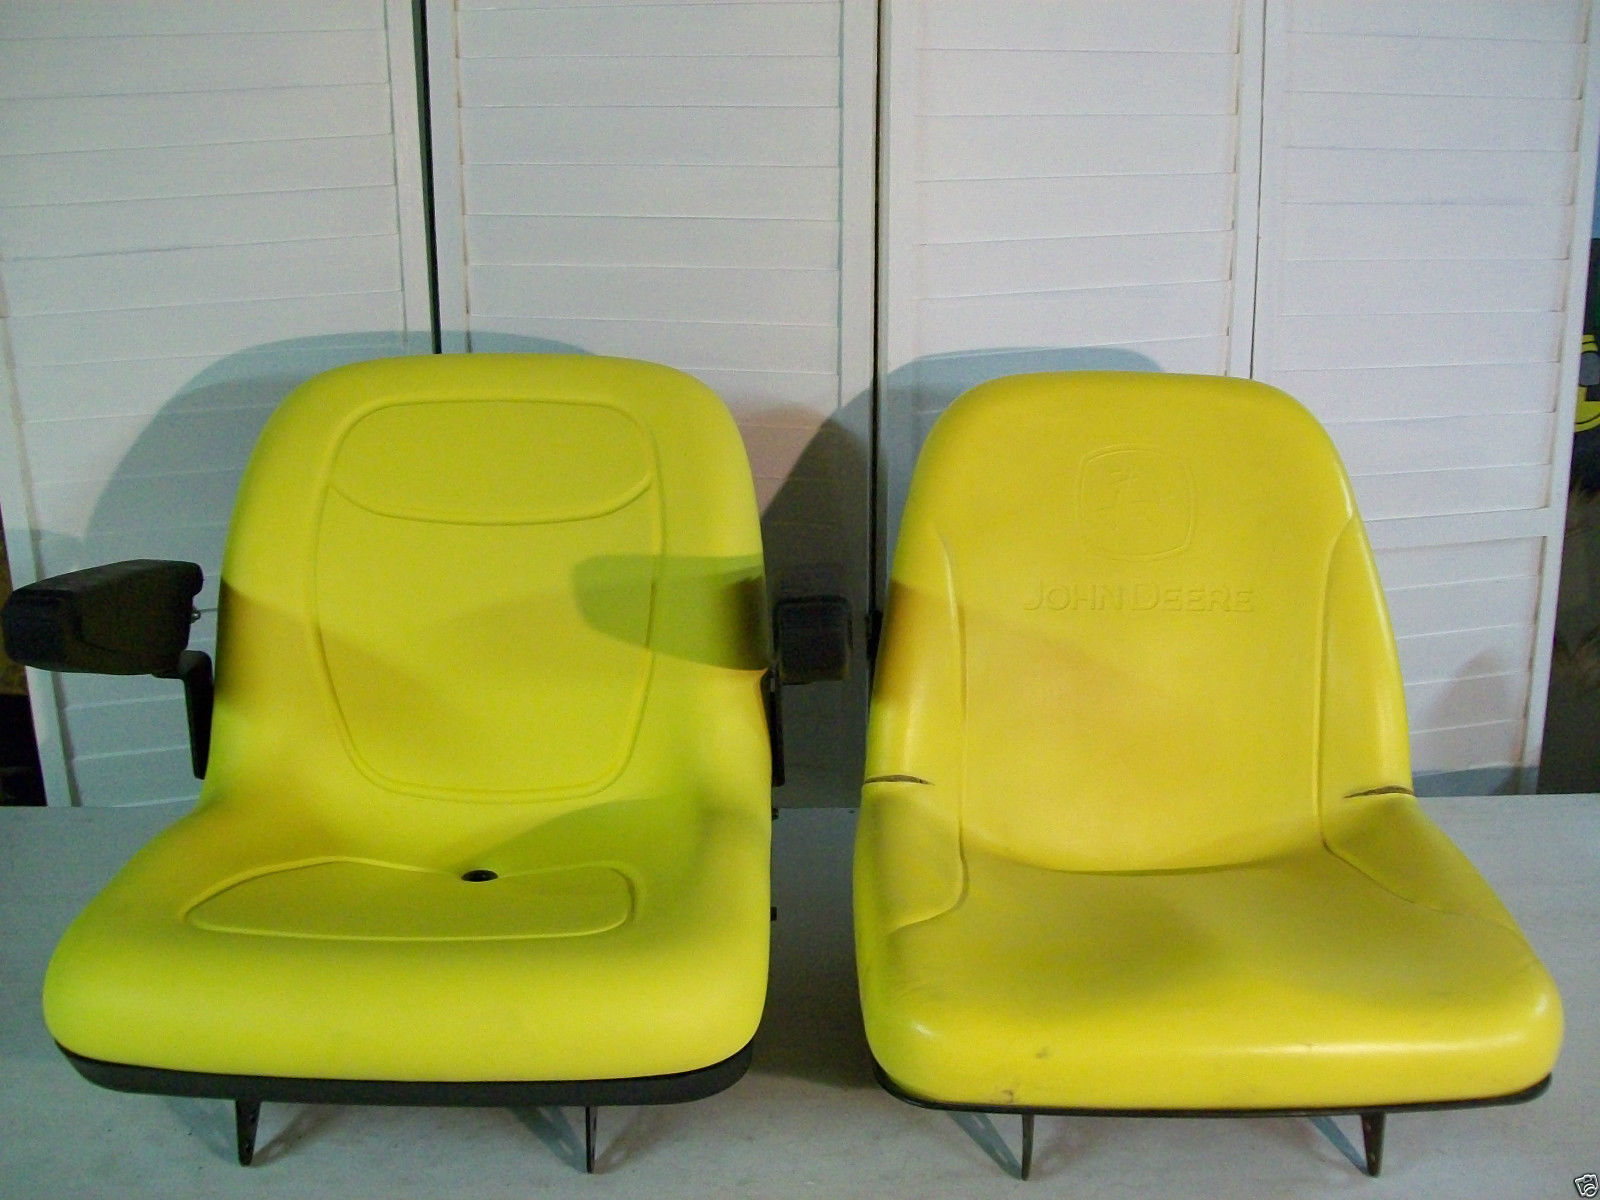 YELLOW SEAT JOHN DEERE X485X495X575X585X595X720X724X740X748X729749 KQ 161197643756 yellow seat john deere x485, x495, x575, x585, x595, x720, x724 john deere x740 wiring diagram at mifinder.co